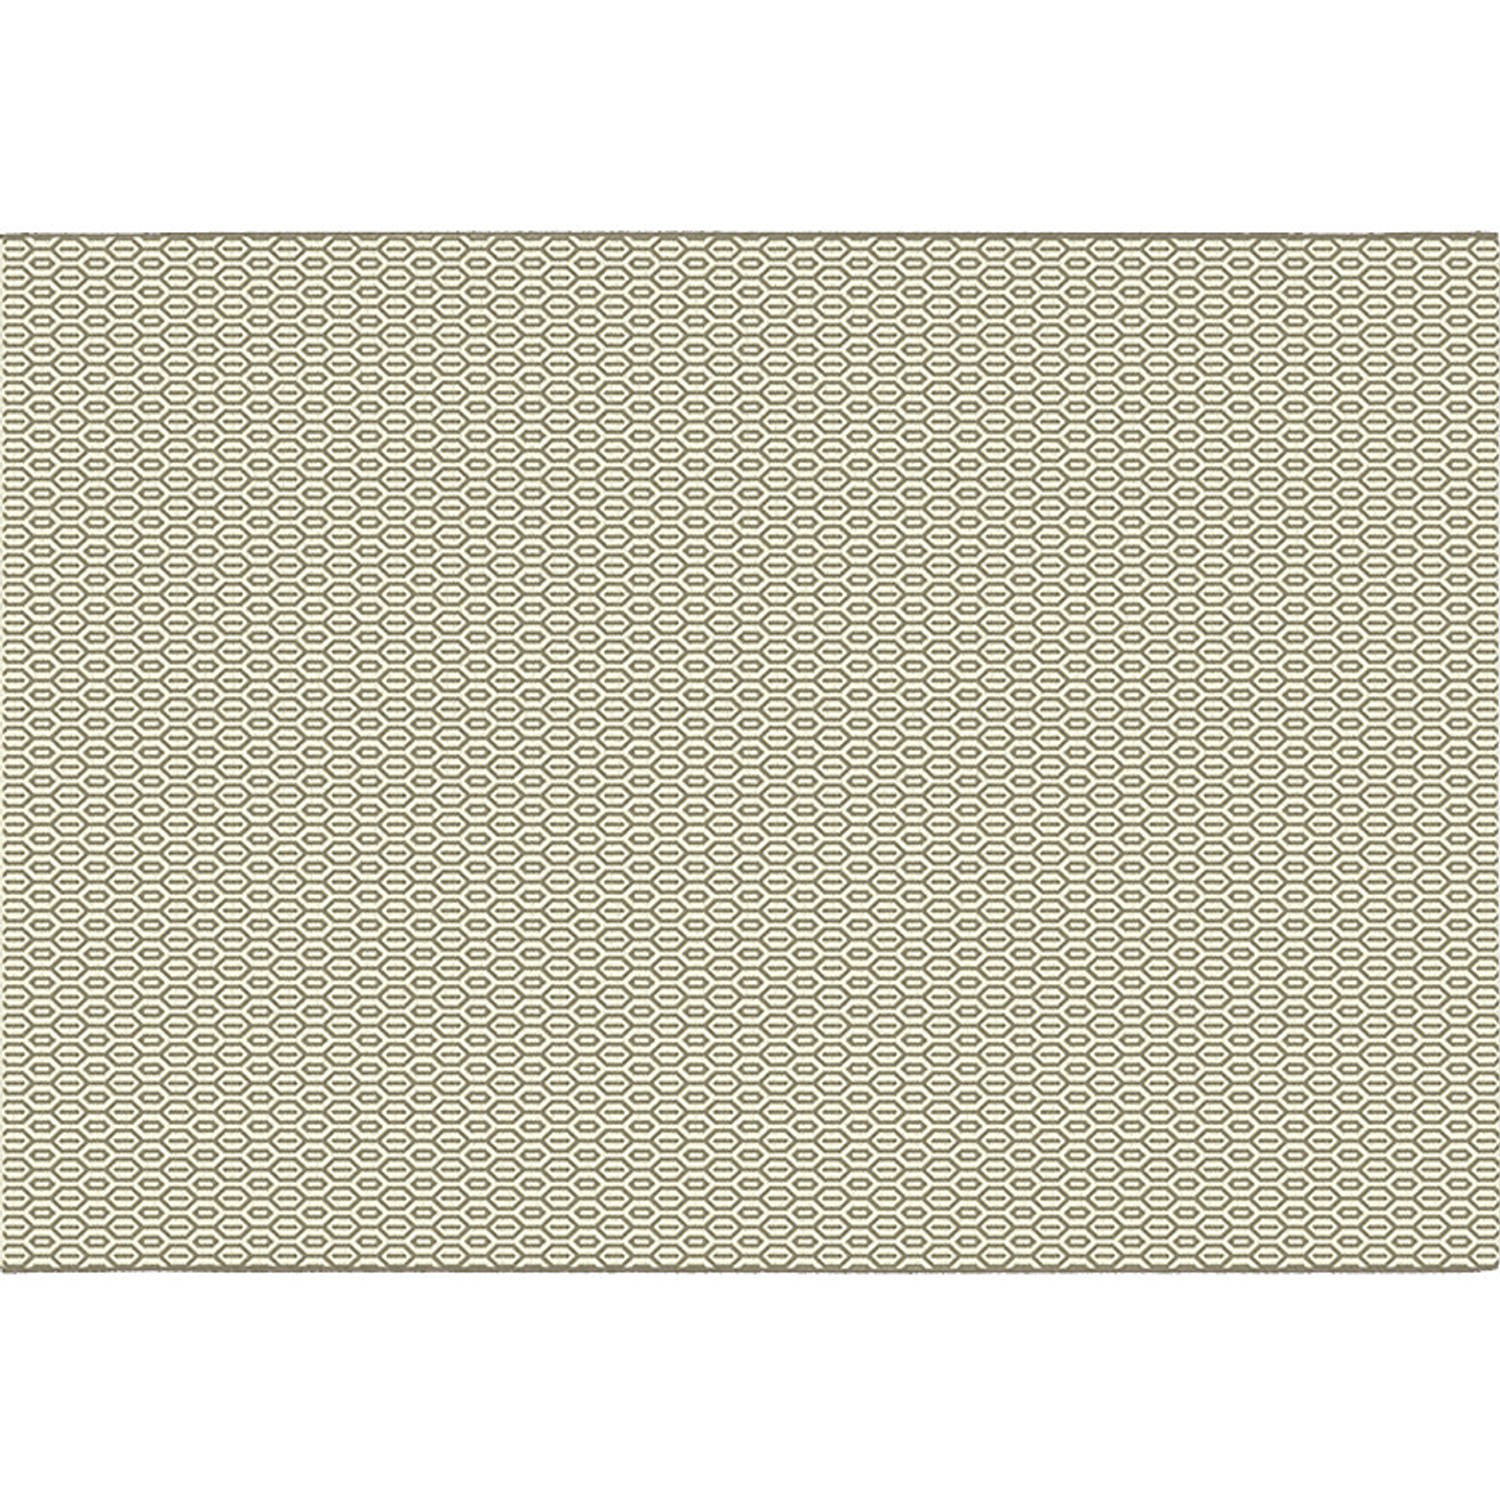 Garden Impressions Buitenkleed Eclips Taupe - 160x230 cm